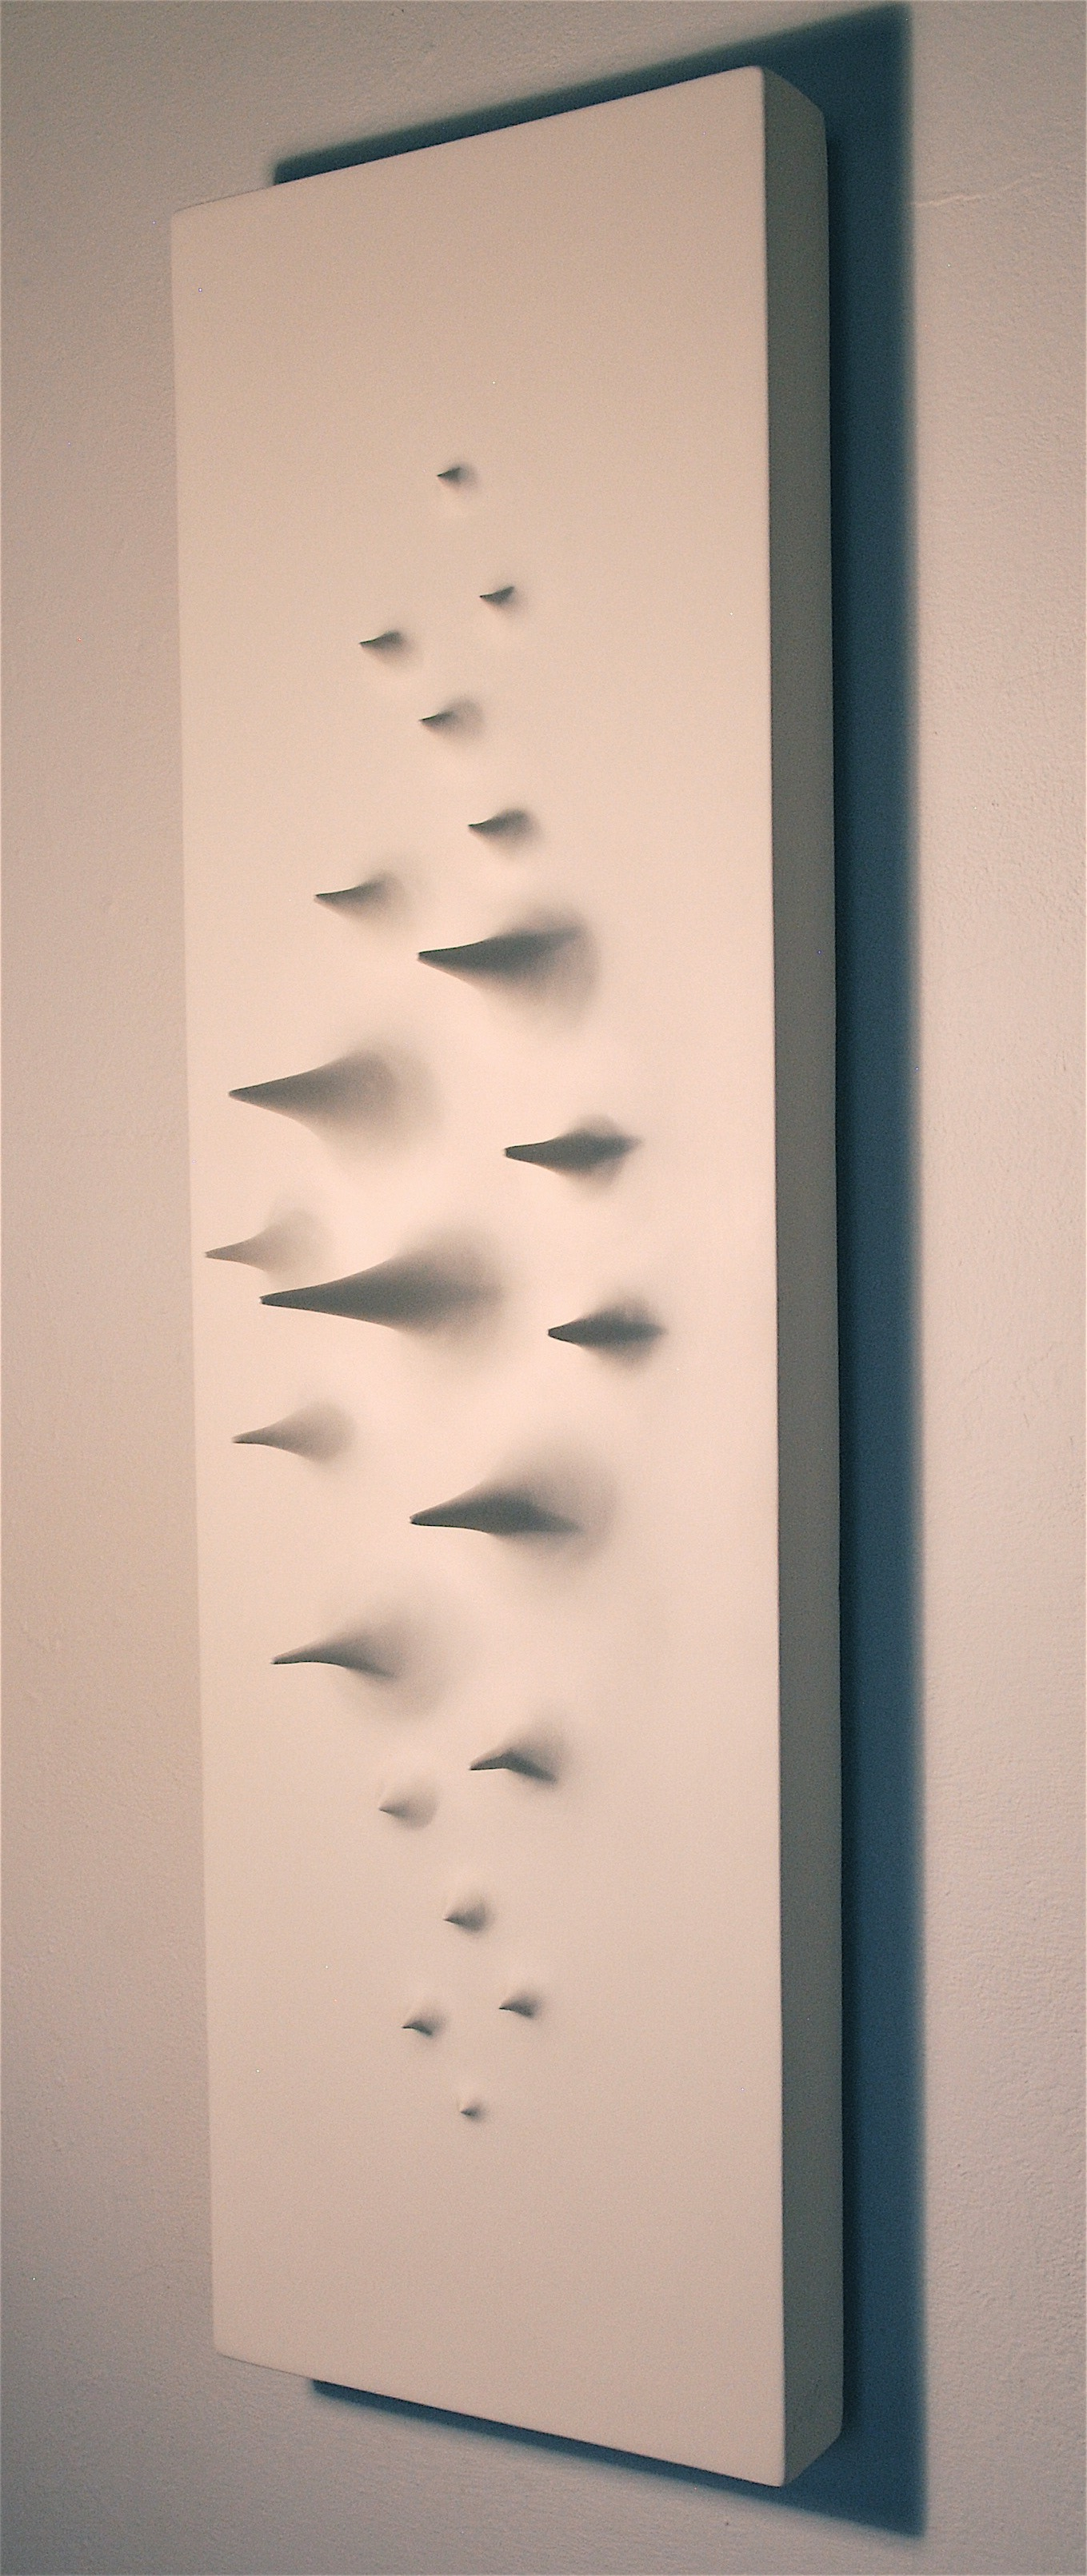 "Thomas Coffin - Spikes (white), 40""h x 12""w x 10""d, mixed media sculptural wall relief"